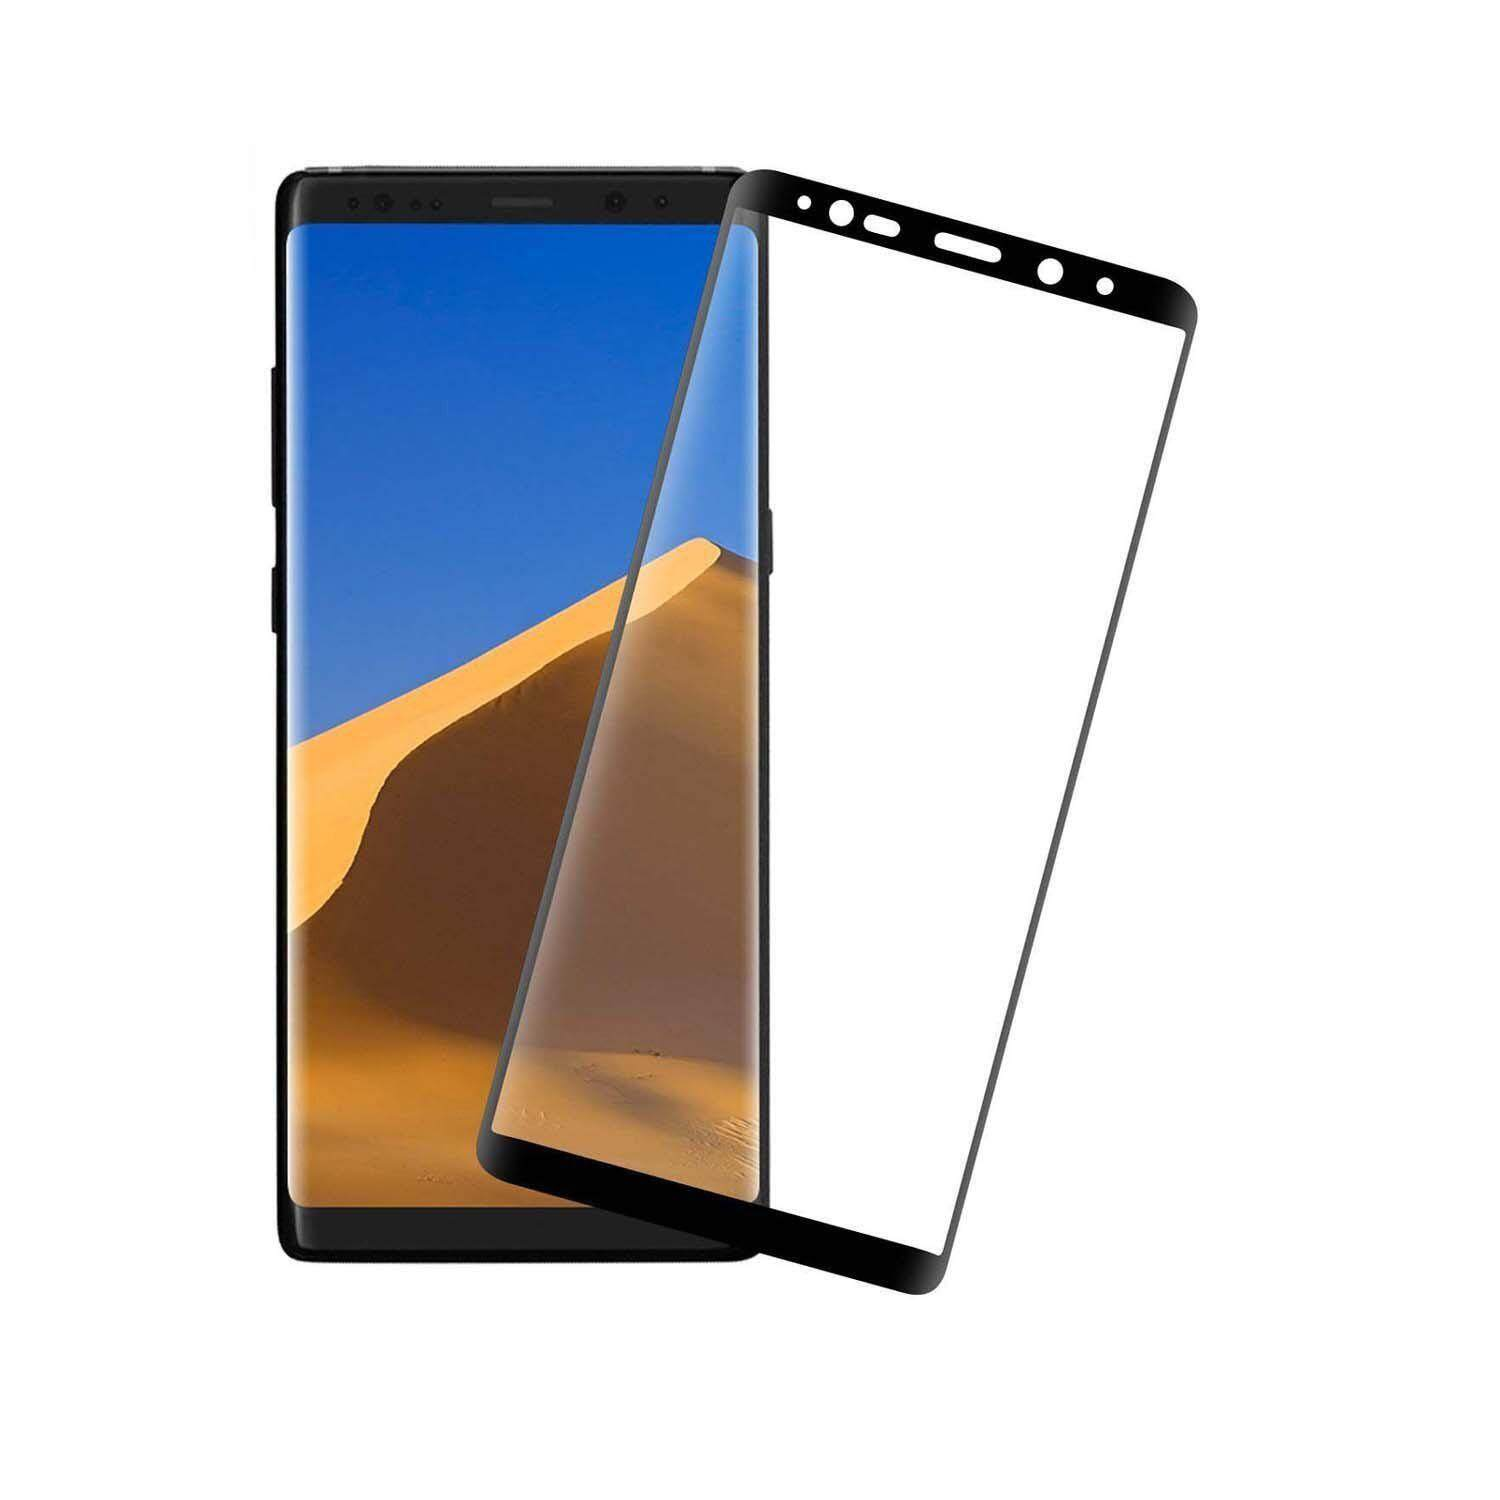 For Samsung Galaxy Note 8 Screen Protector Tempered Glass 3D Full Coverage High Definition Clear Anti